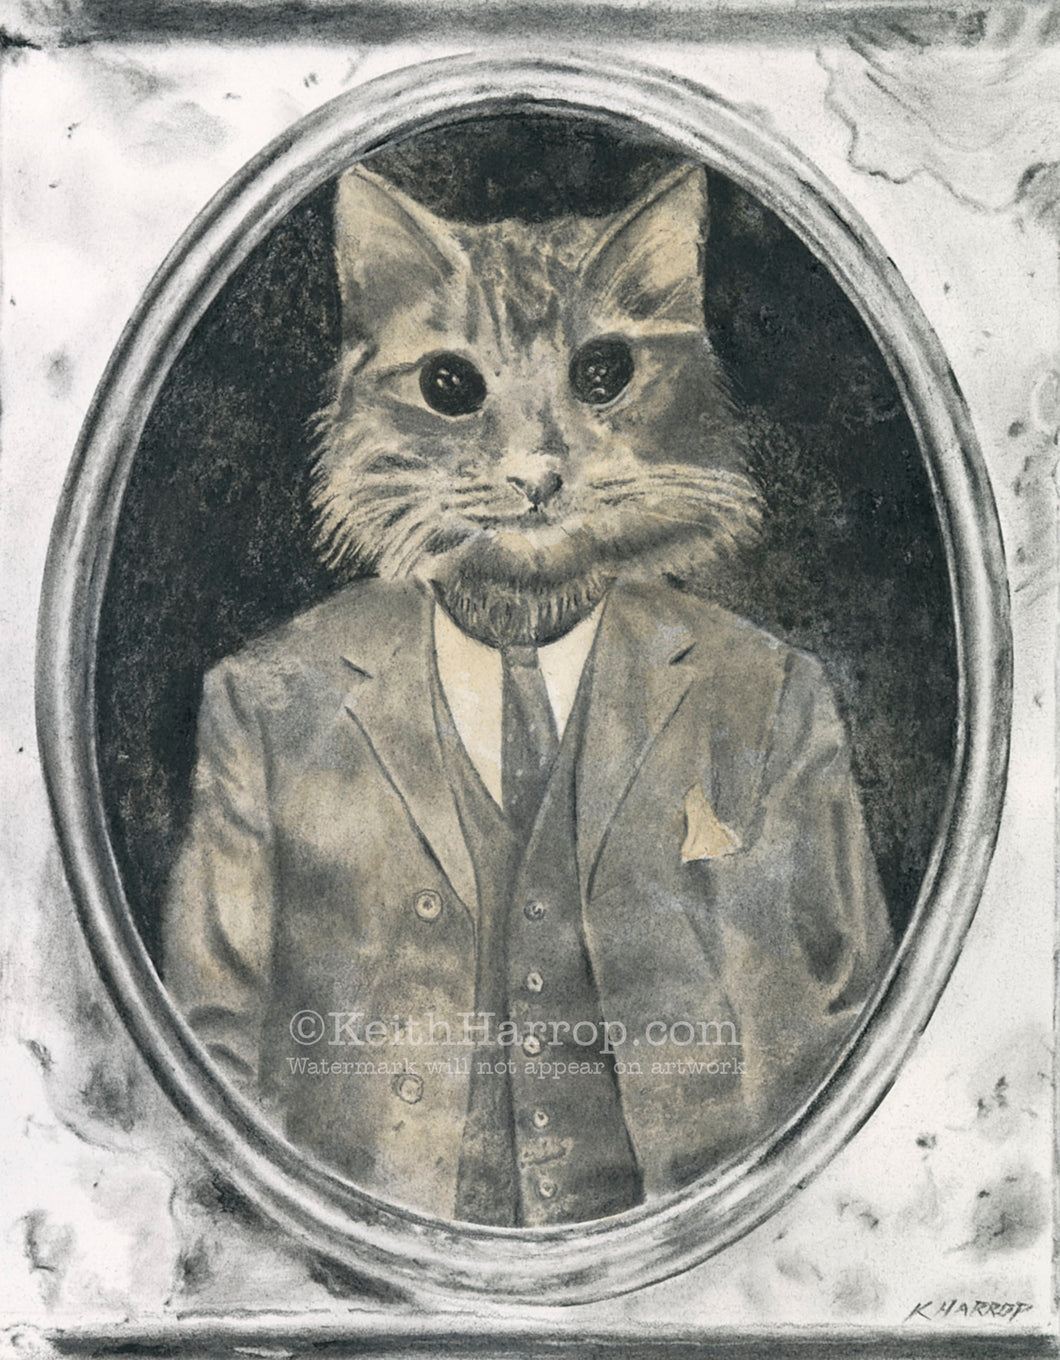 Animorphia #1 (Cat) - Pencil Illustration